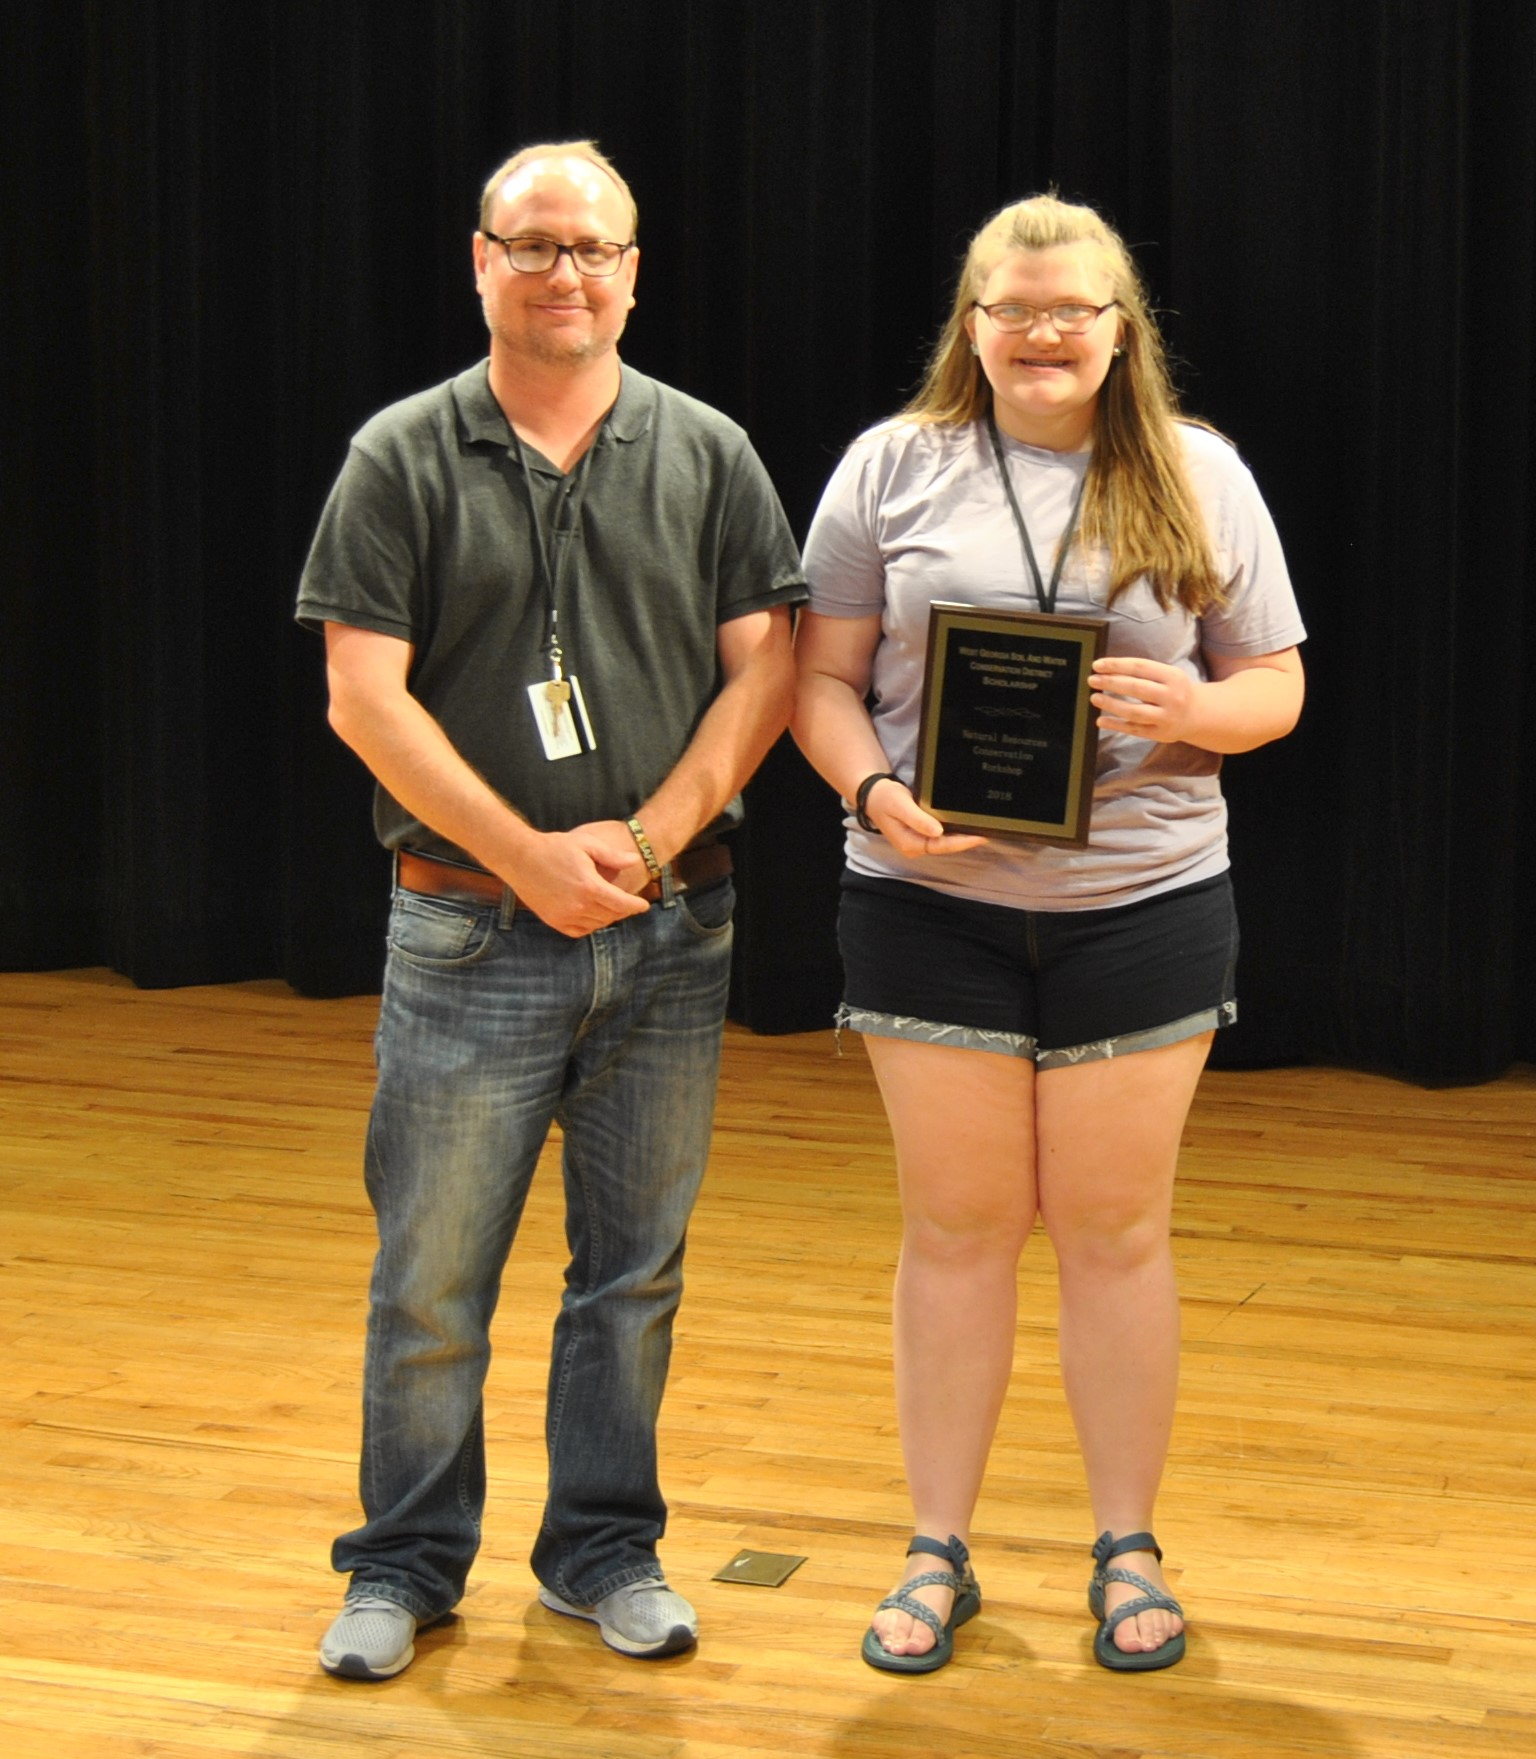 Rachel Ibbetson was the recipient of the $1000 West Georgia Soil & Water Conservation District Scholarship. A special thank you to  Haralson County, Georgia Farm Bureau Insurance  for sponsoring this scholarship.  Rachel is an upcoming junior at  Haralson County High School ! Pictured with her is Luke Crosson, NRCW Director.